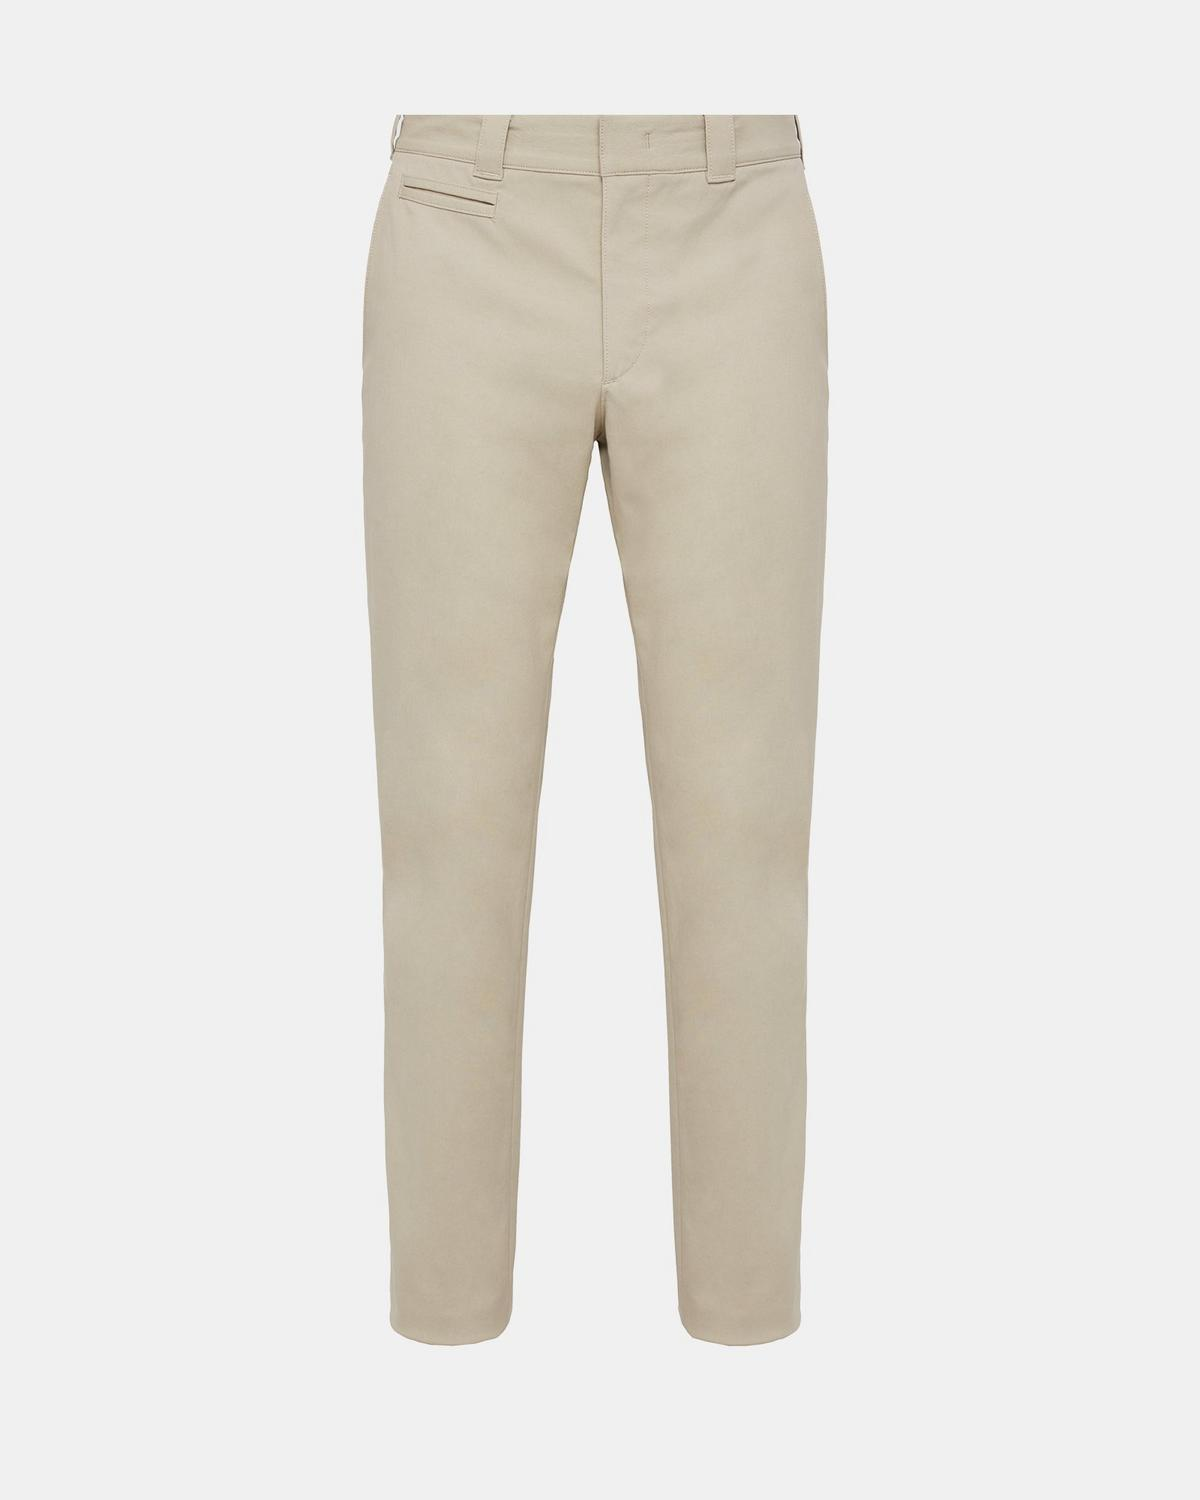 Cotton Canvas Utility Pant